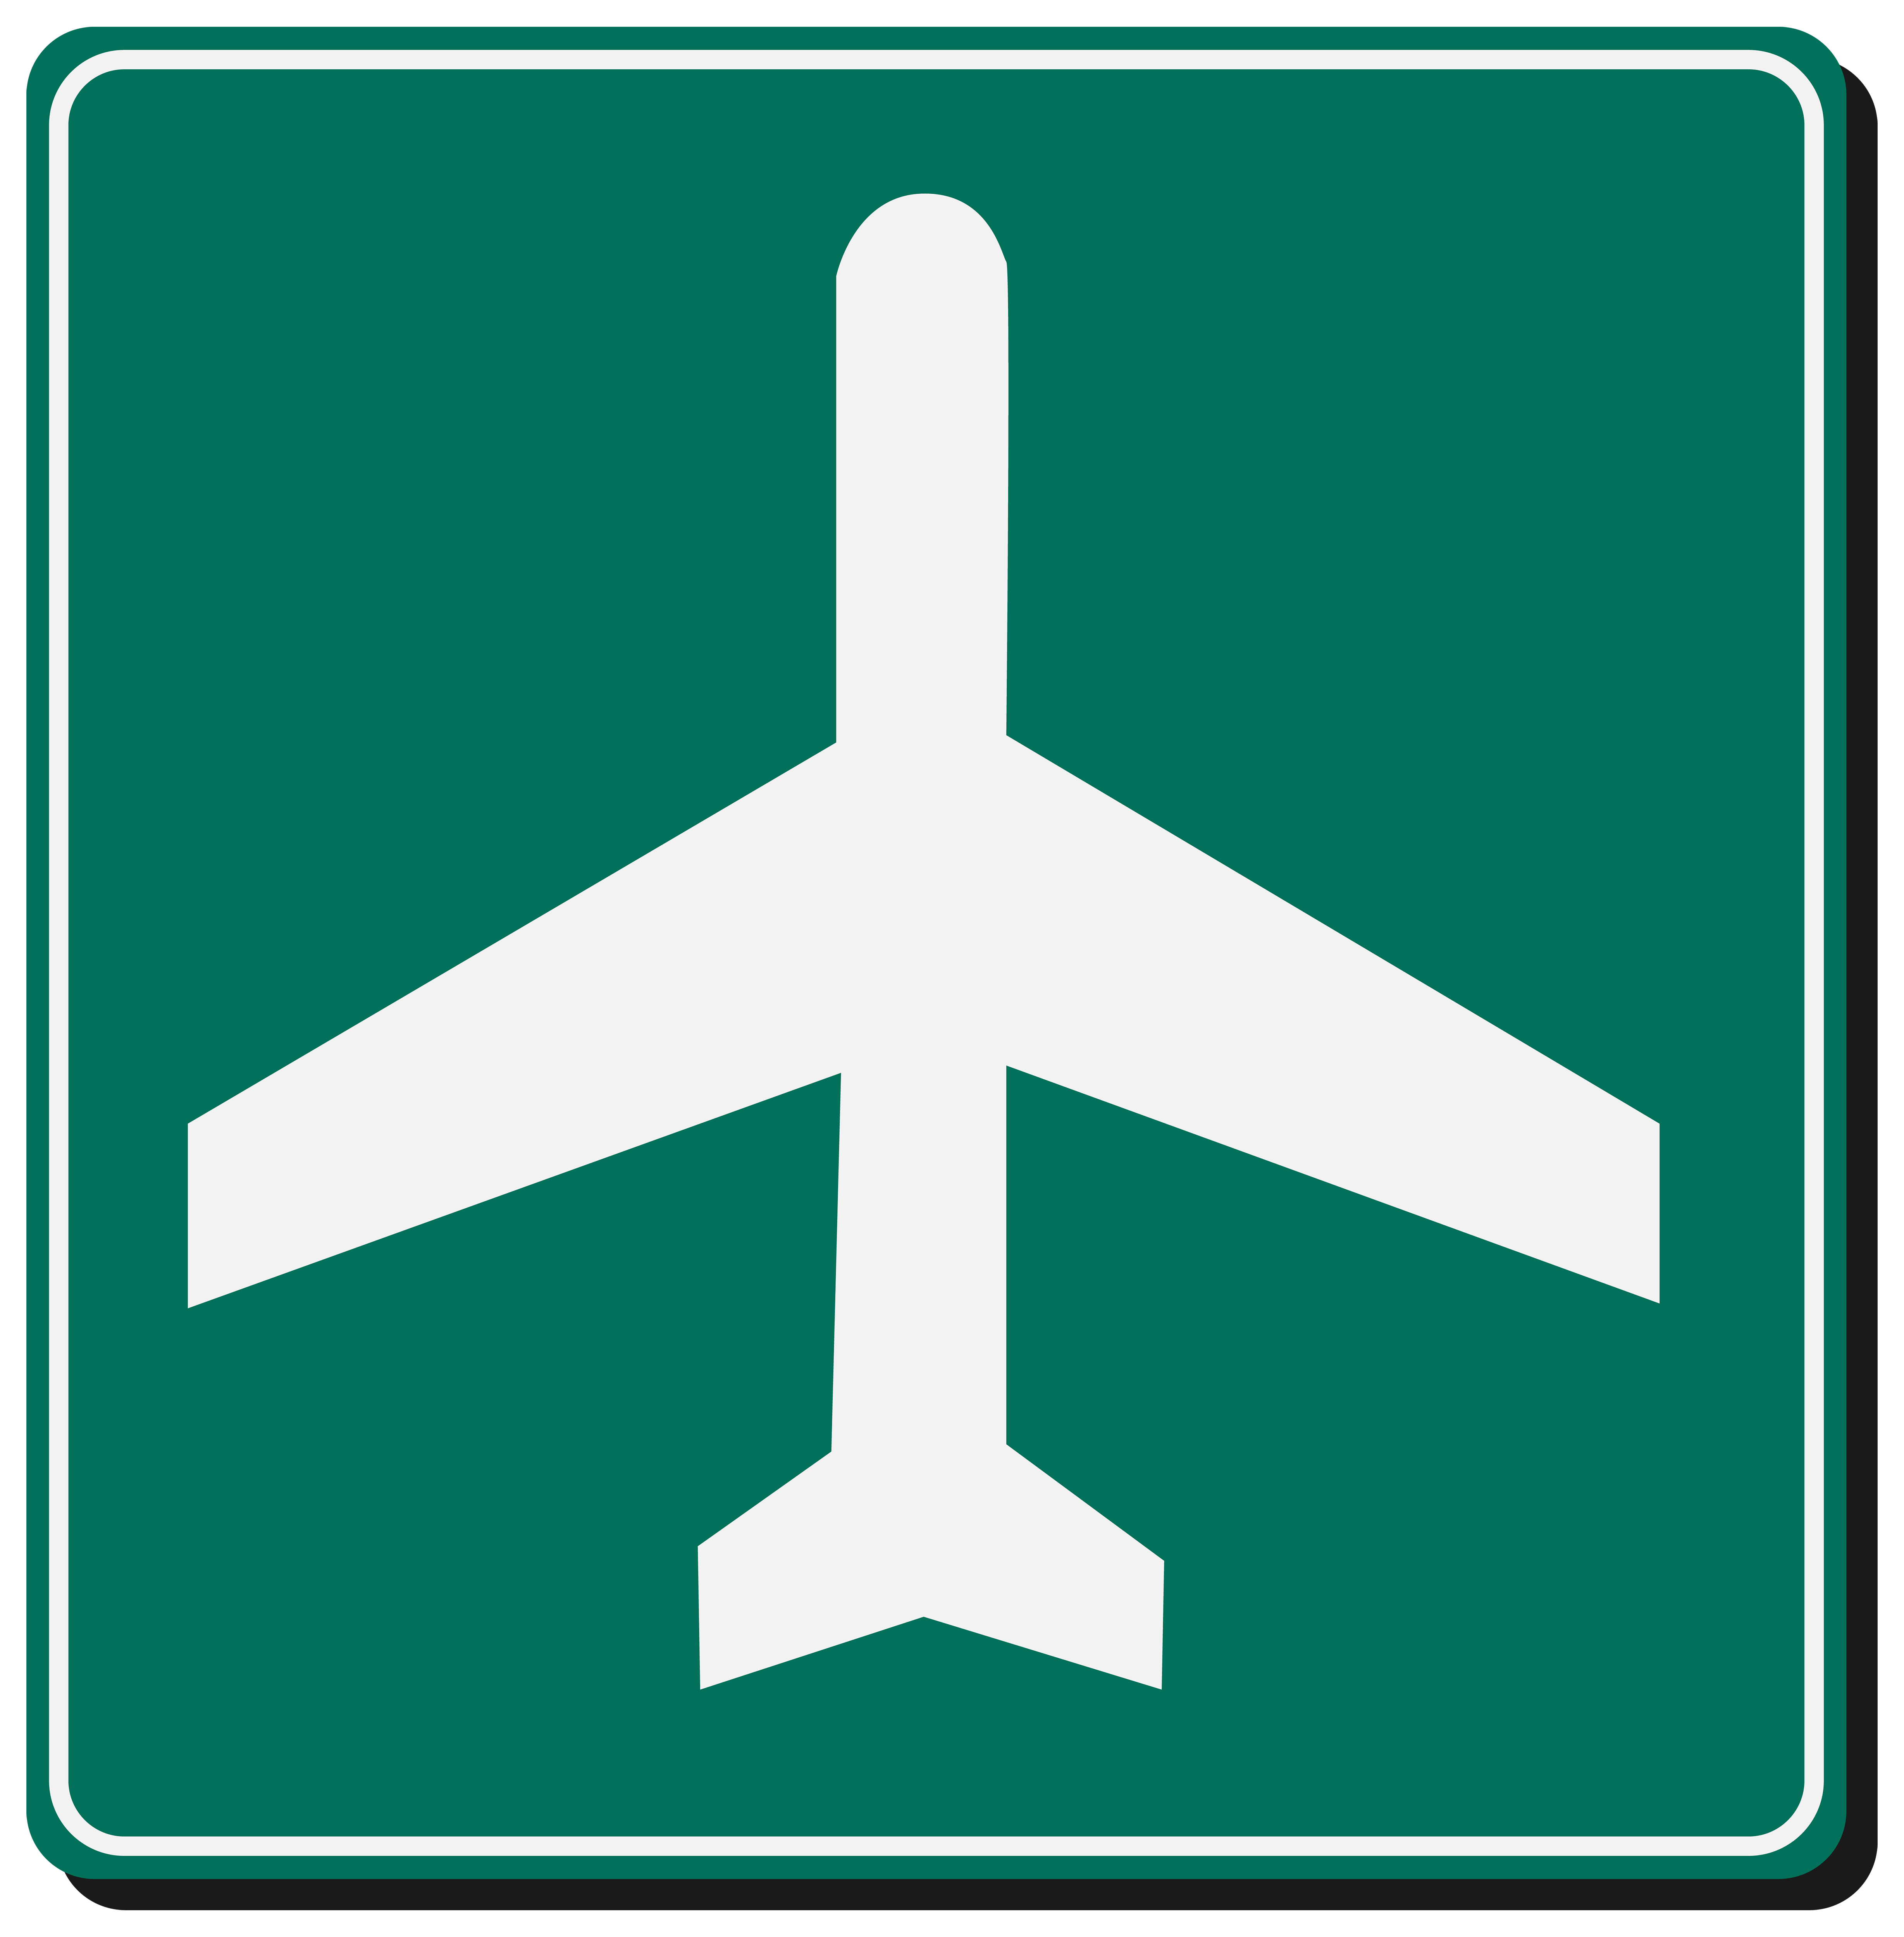 Airport clipart logo. Sign png best web